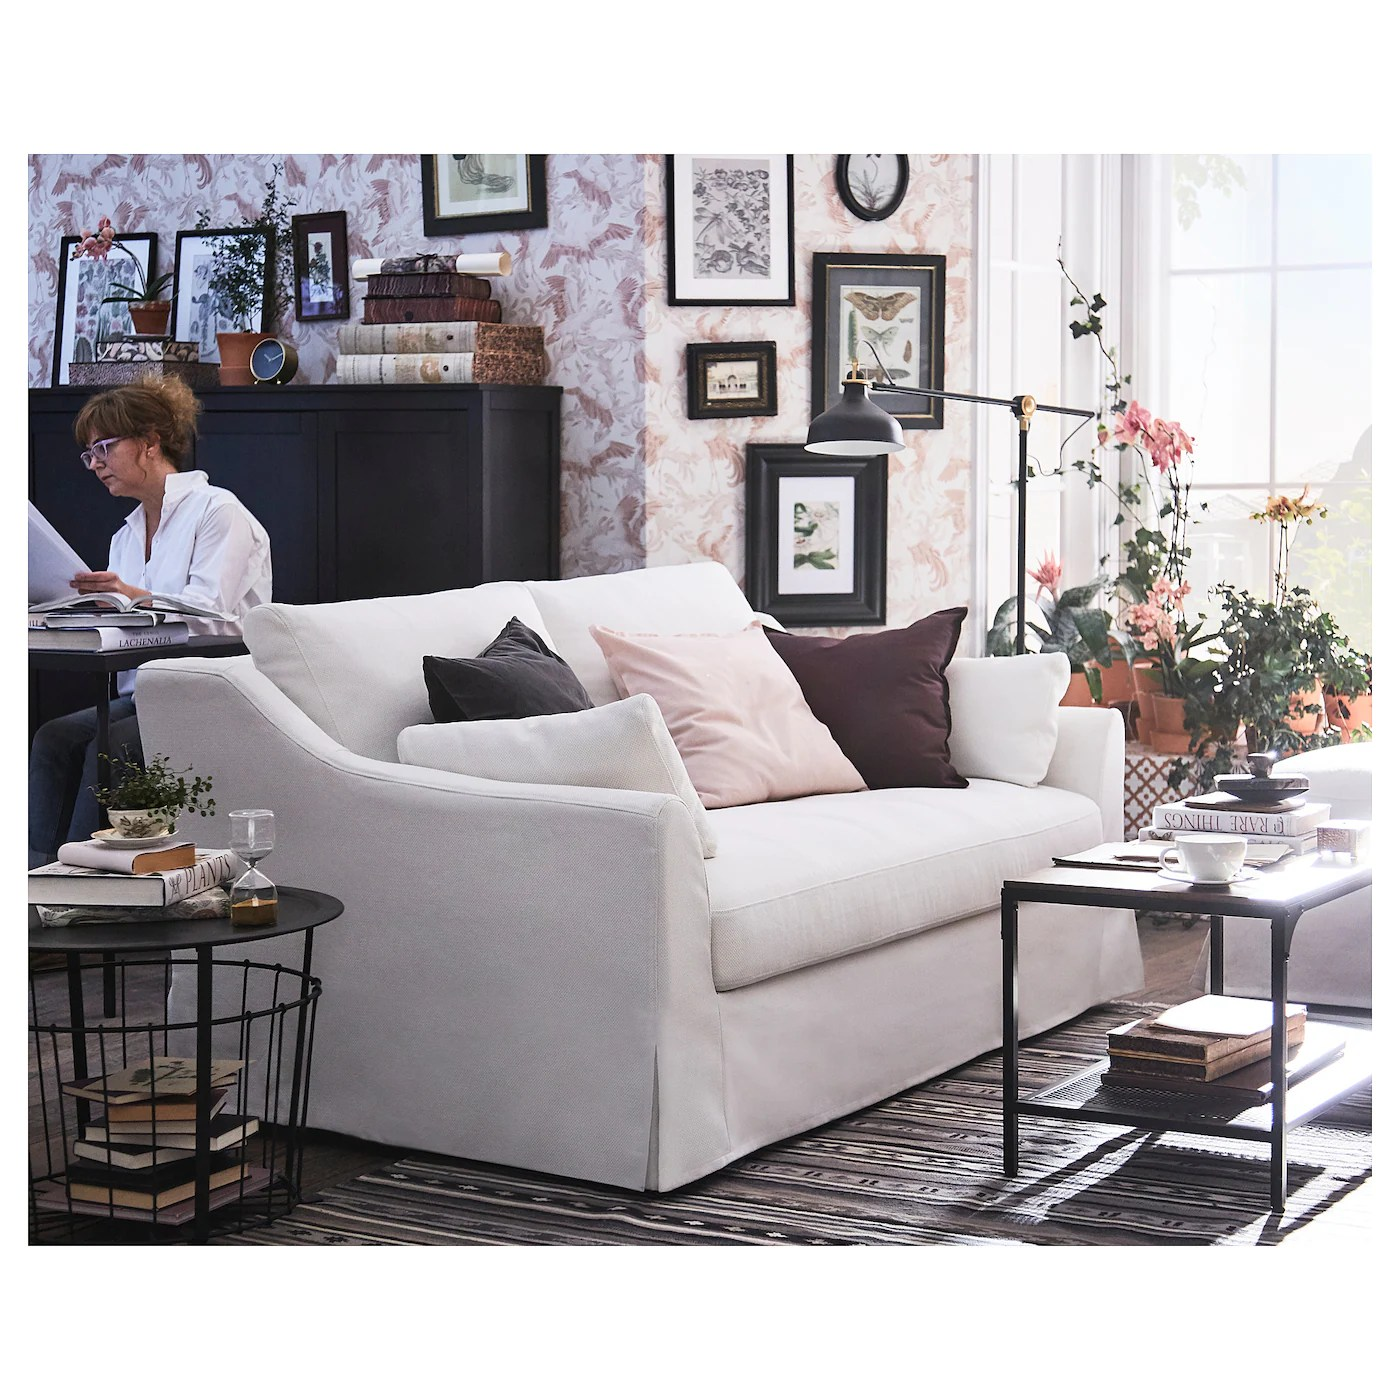 This compensation may impact how and where products appear on th. FÄRLÖV 2-seat sofa, Flodafors white - IKEA